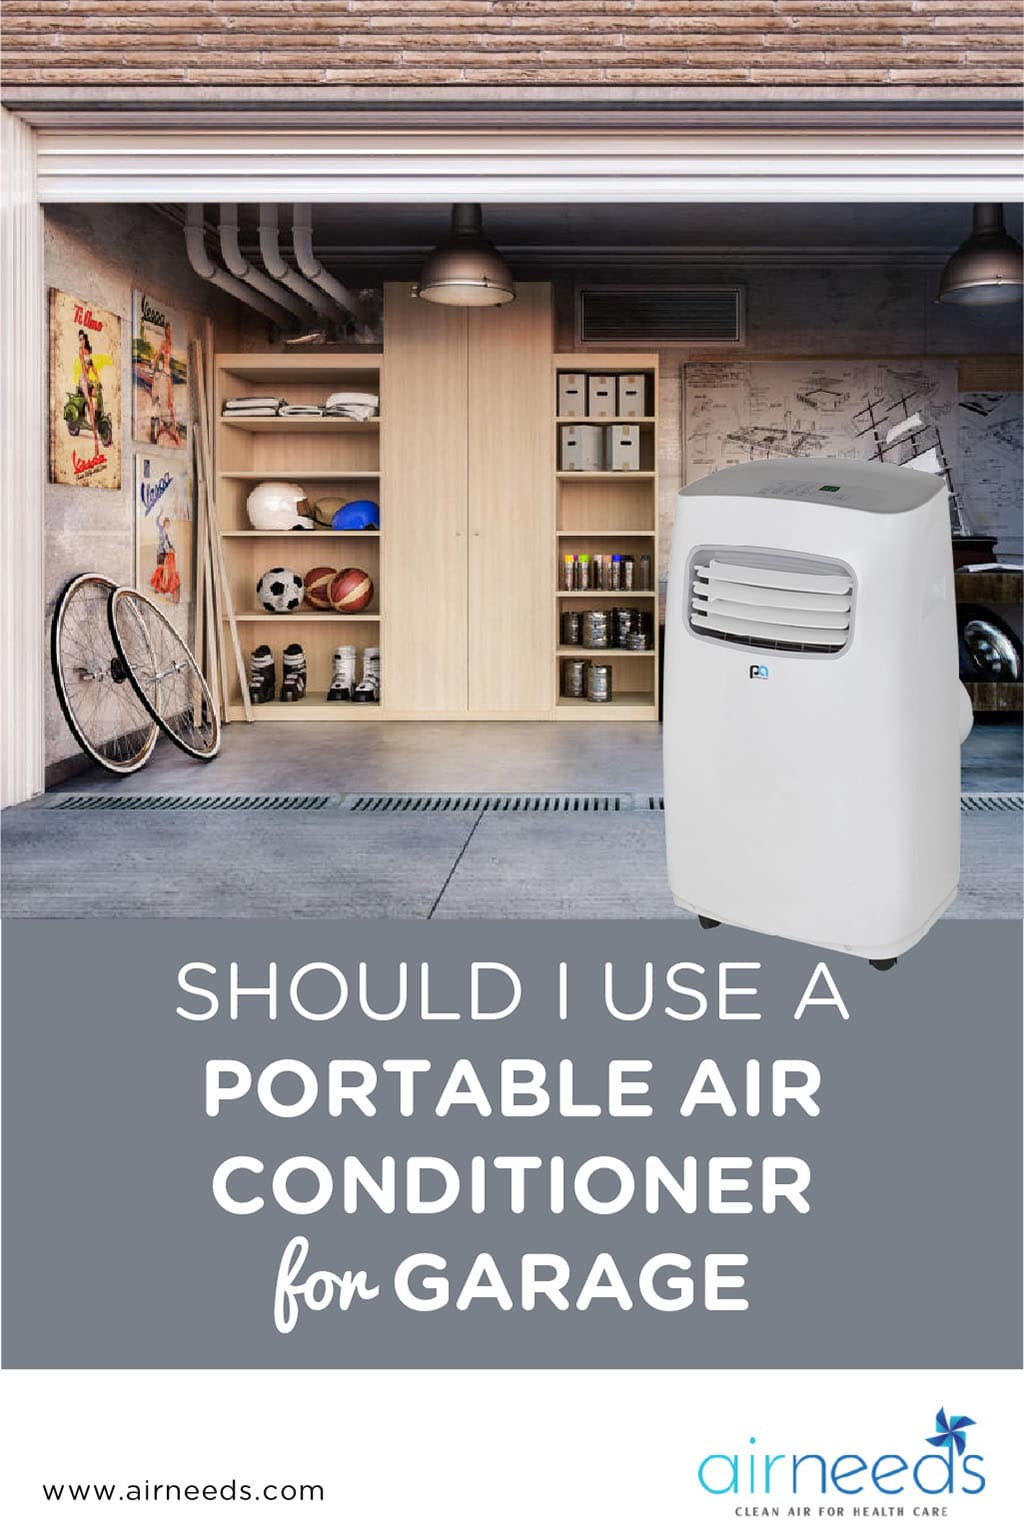 Should I Use a Portable Air Conditioner for Garage - AirNeeds